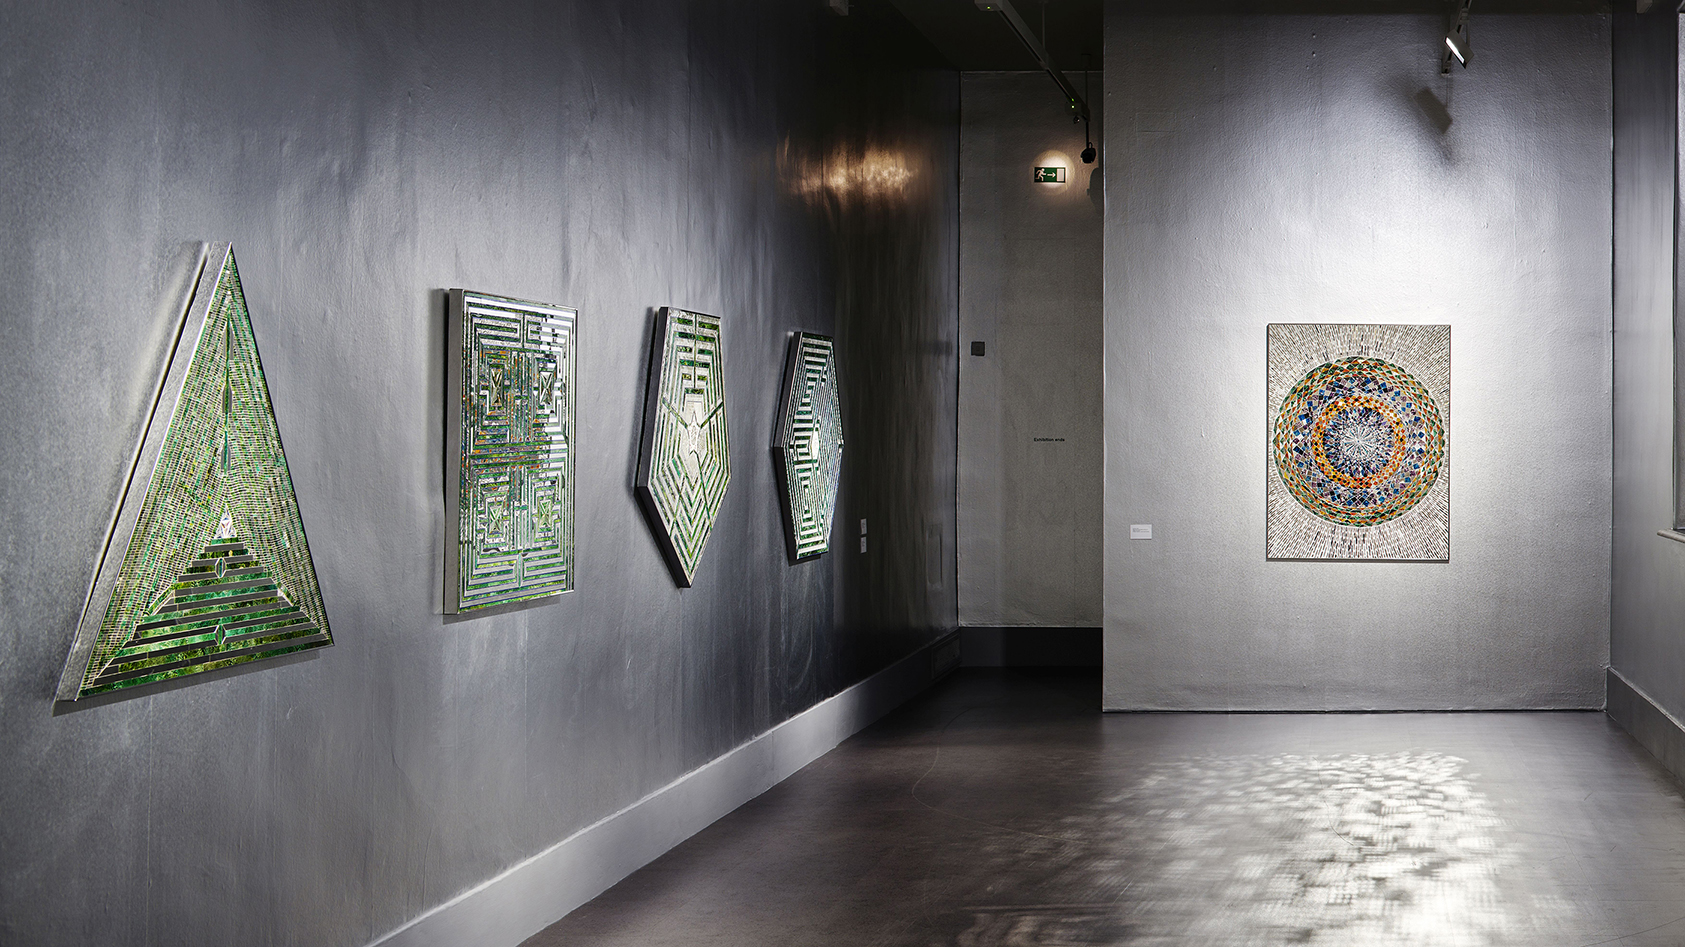 Installation view Sunset, Sunrise by Monir Shahroudy Farmanfarmaian, 10 August – 25 November 2018, IMMA. Photo: Ros Kavanagh.